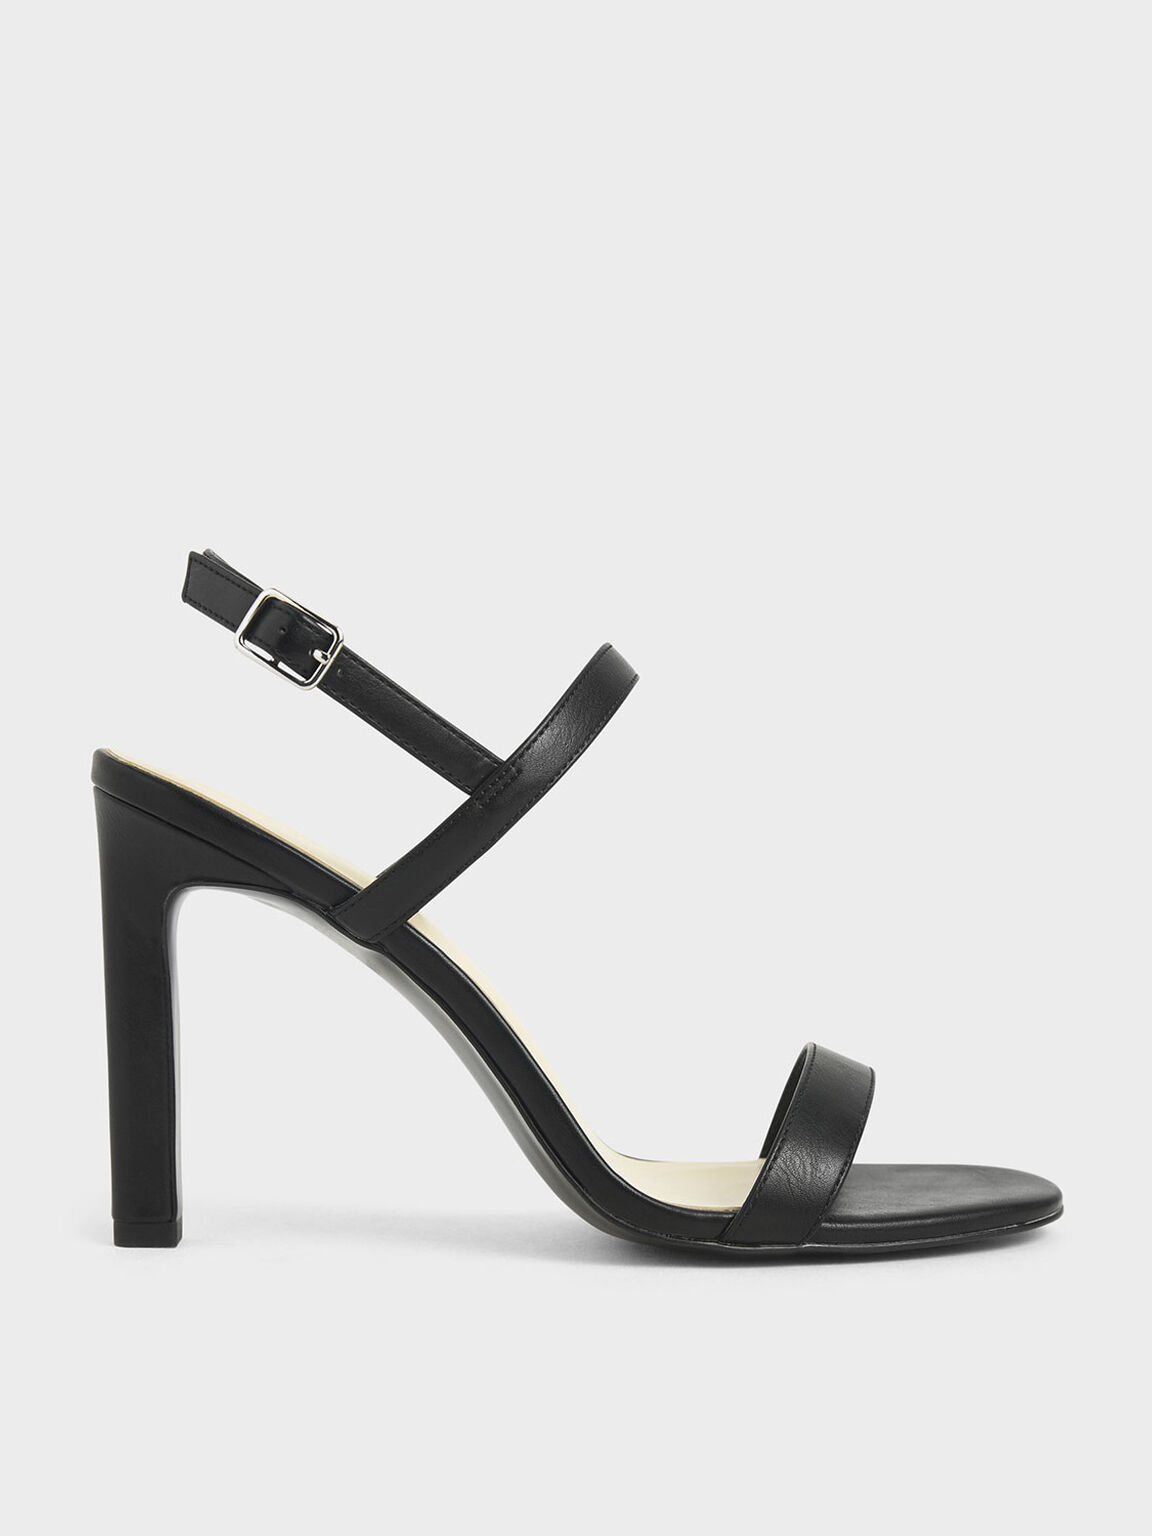 Slingback Stiletto Heel Sandals, Black, hi-res